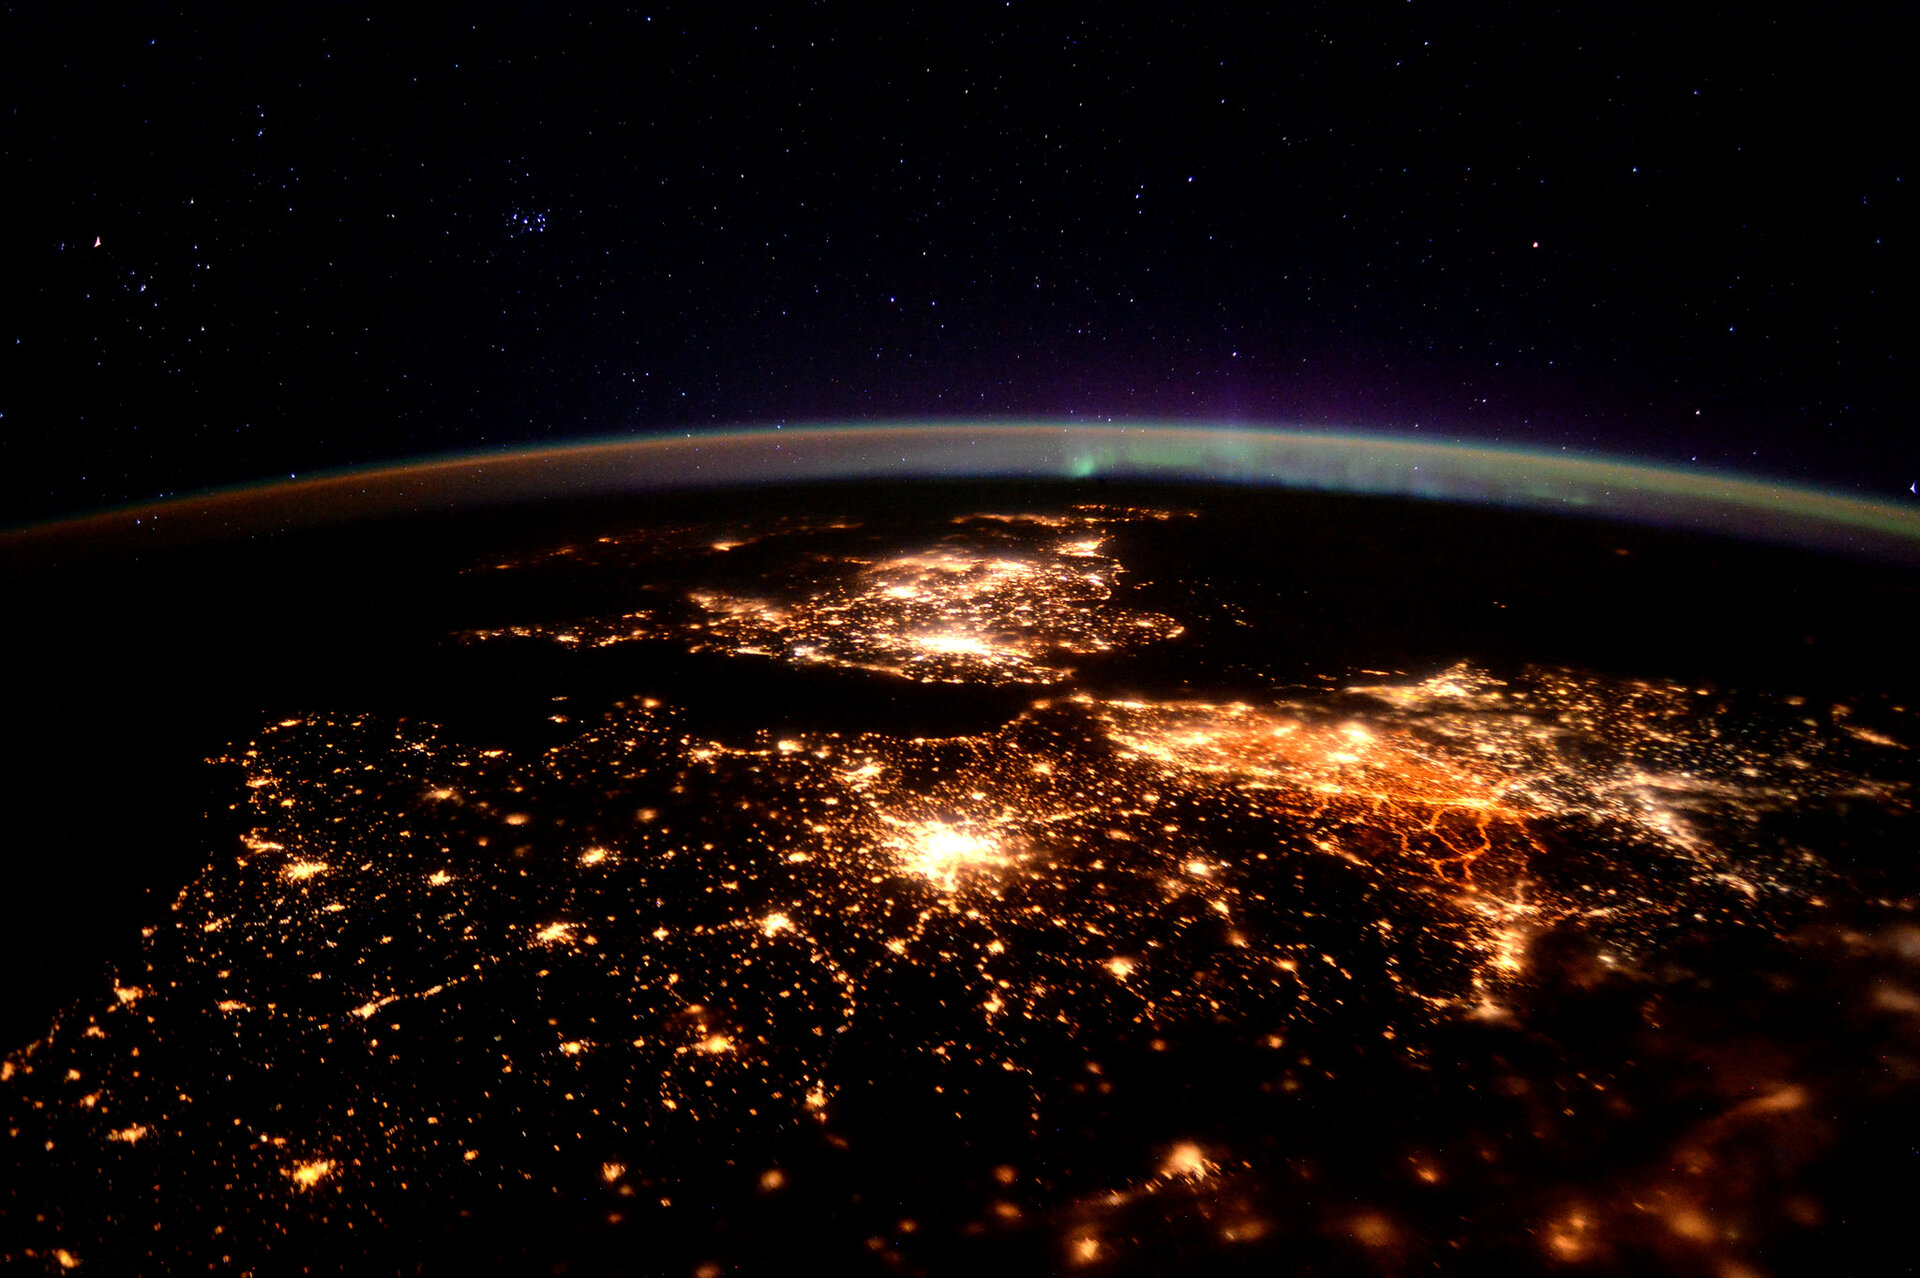 France seen at night from the International Space Station